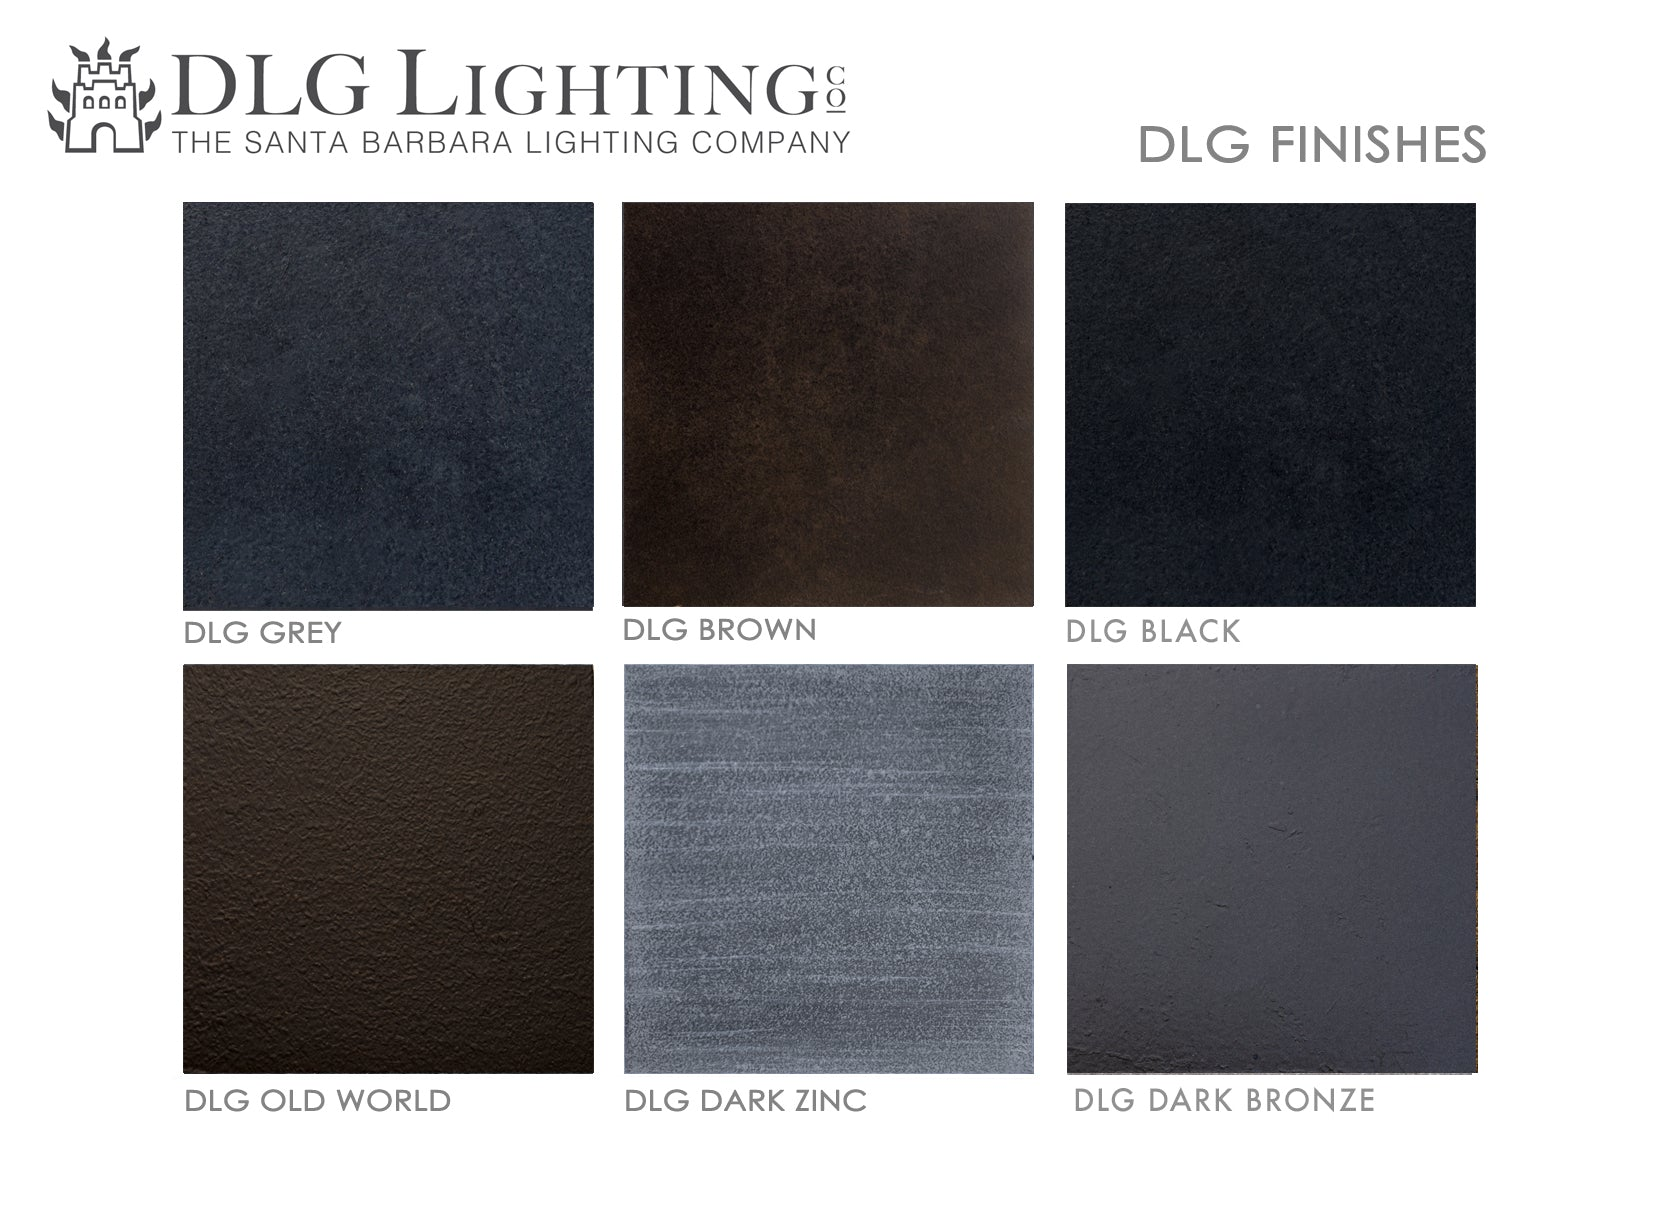 DLG Lighting Finish Swatches - The Santa Barbara Lighting Company